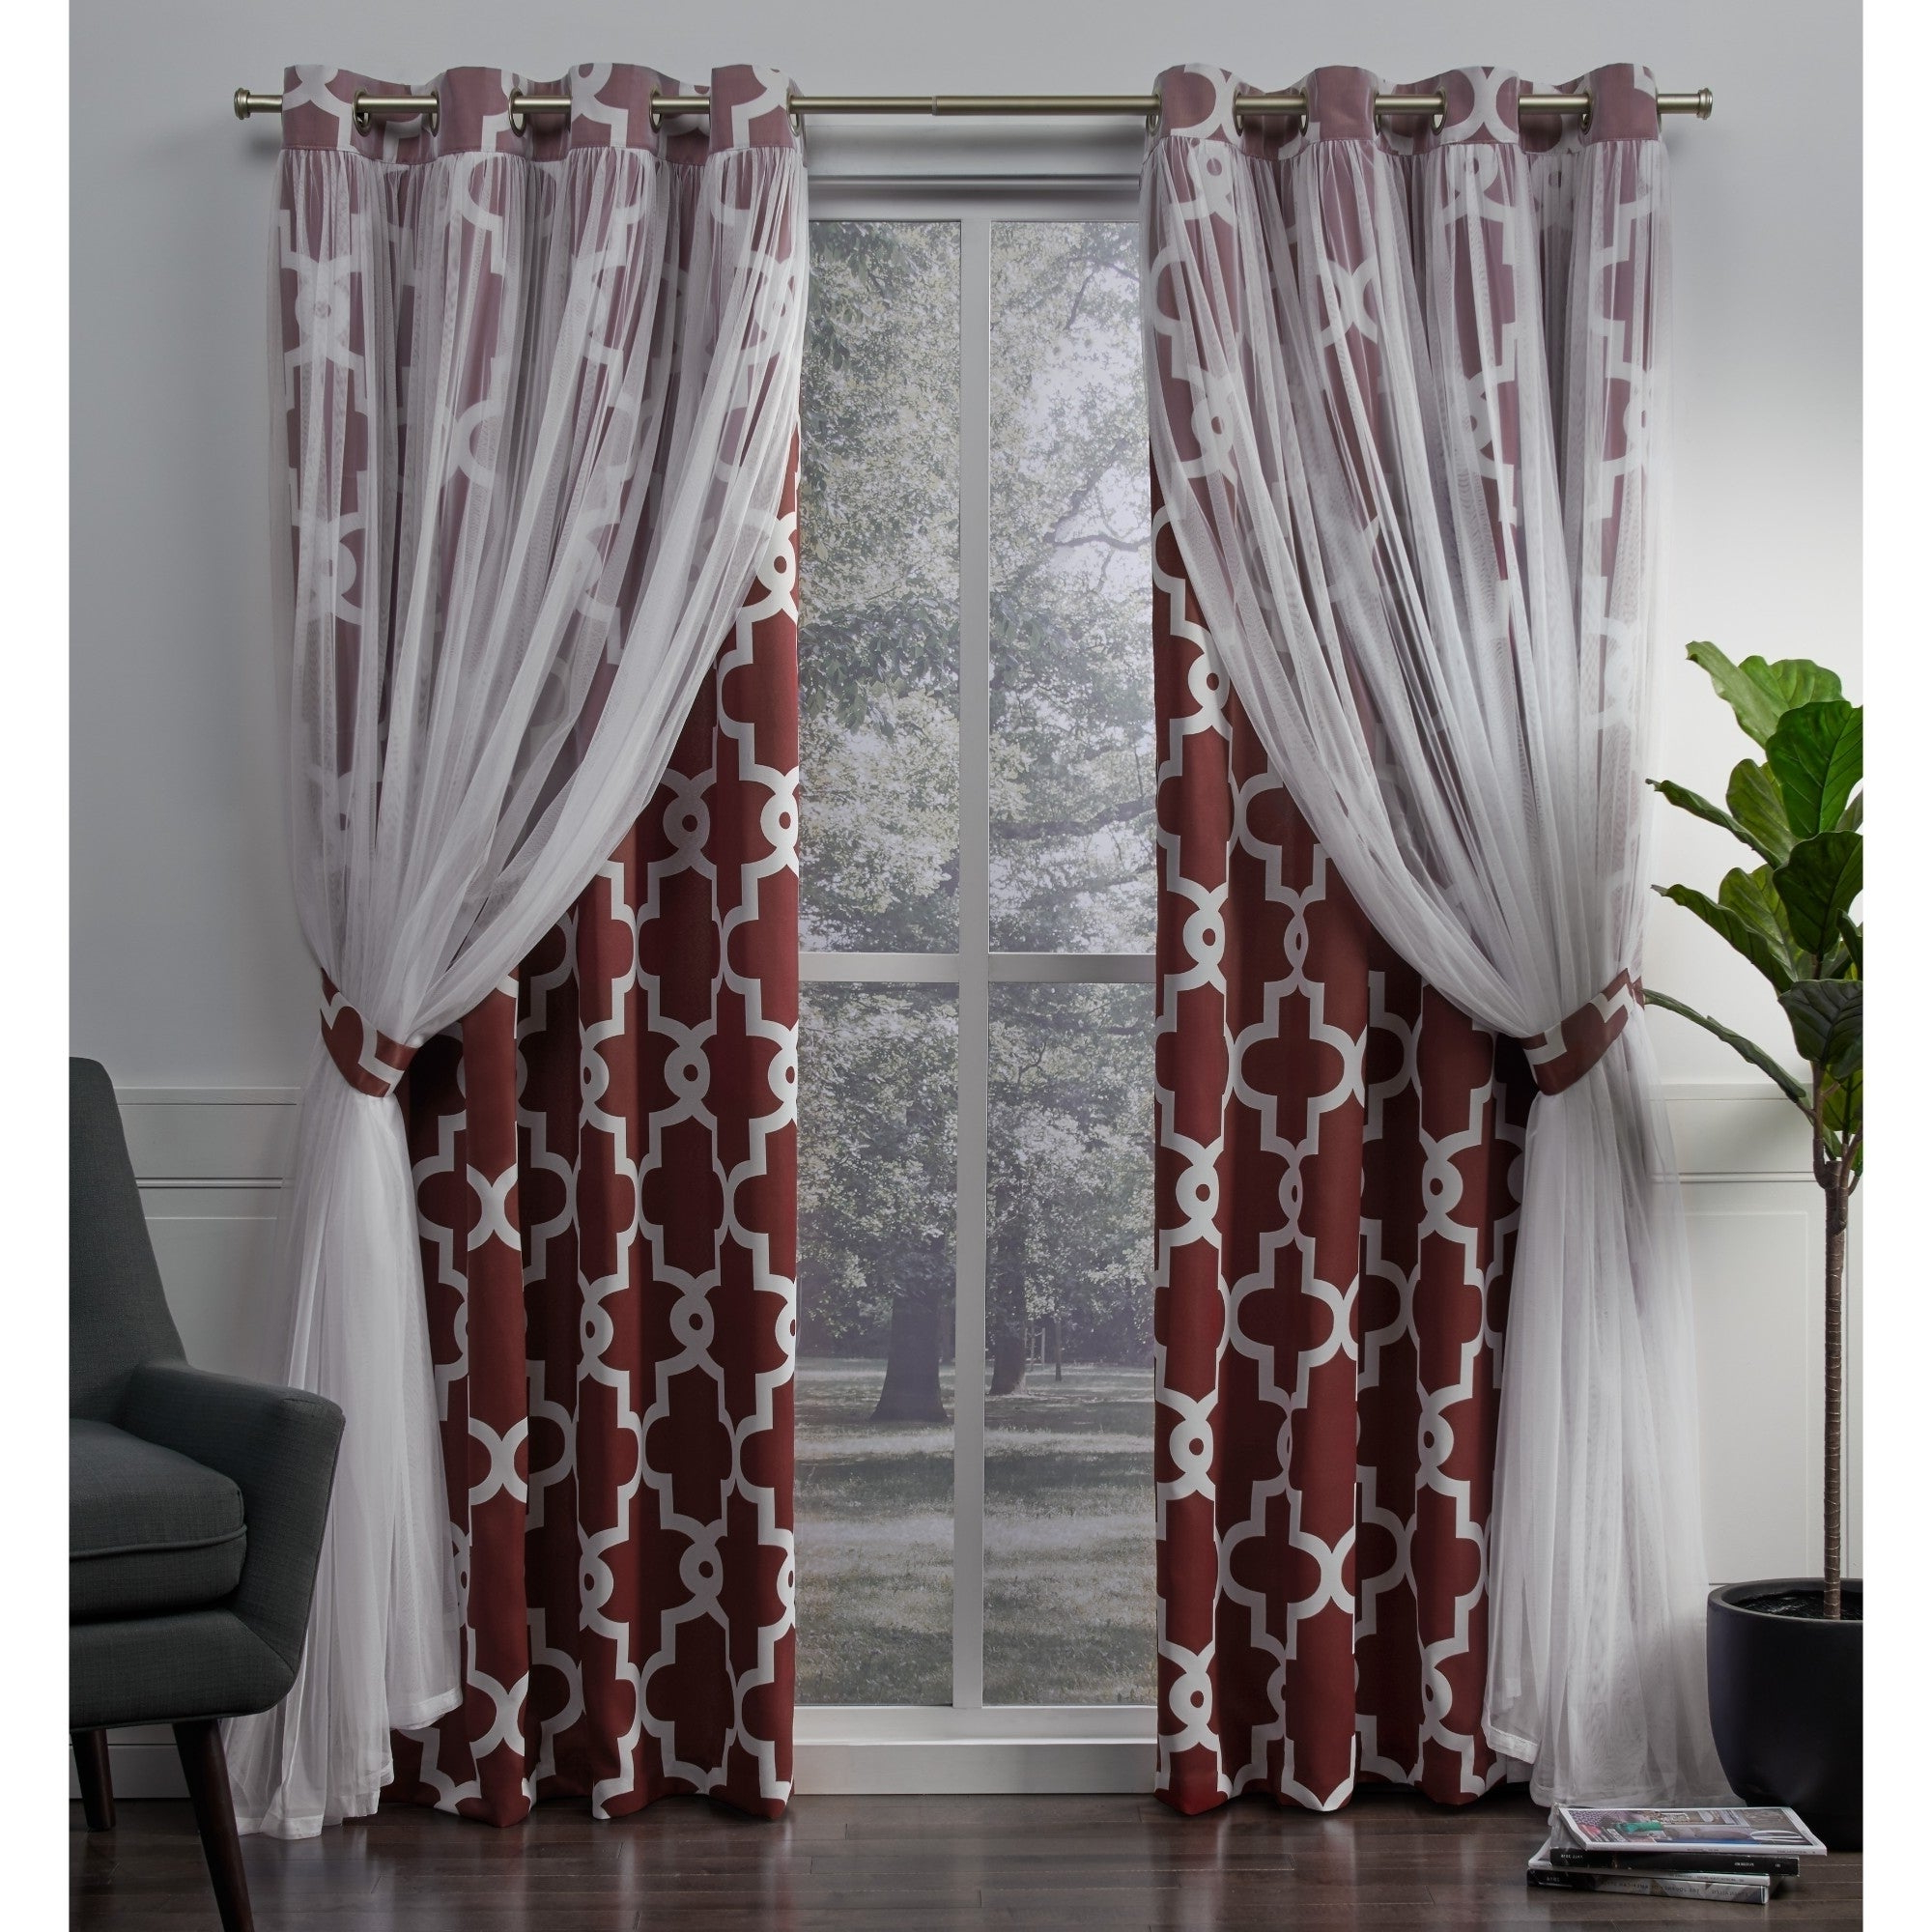 Details About Ati Home Alegra Thermal Woven Blackout Grommet Top Curtain Pertaining To Most Current Woven Blackout Curtain Panel Pairs With Grommet Top (View 8 of 20)